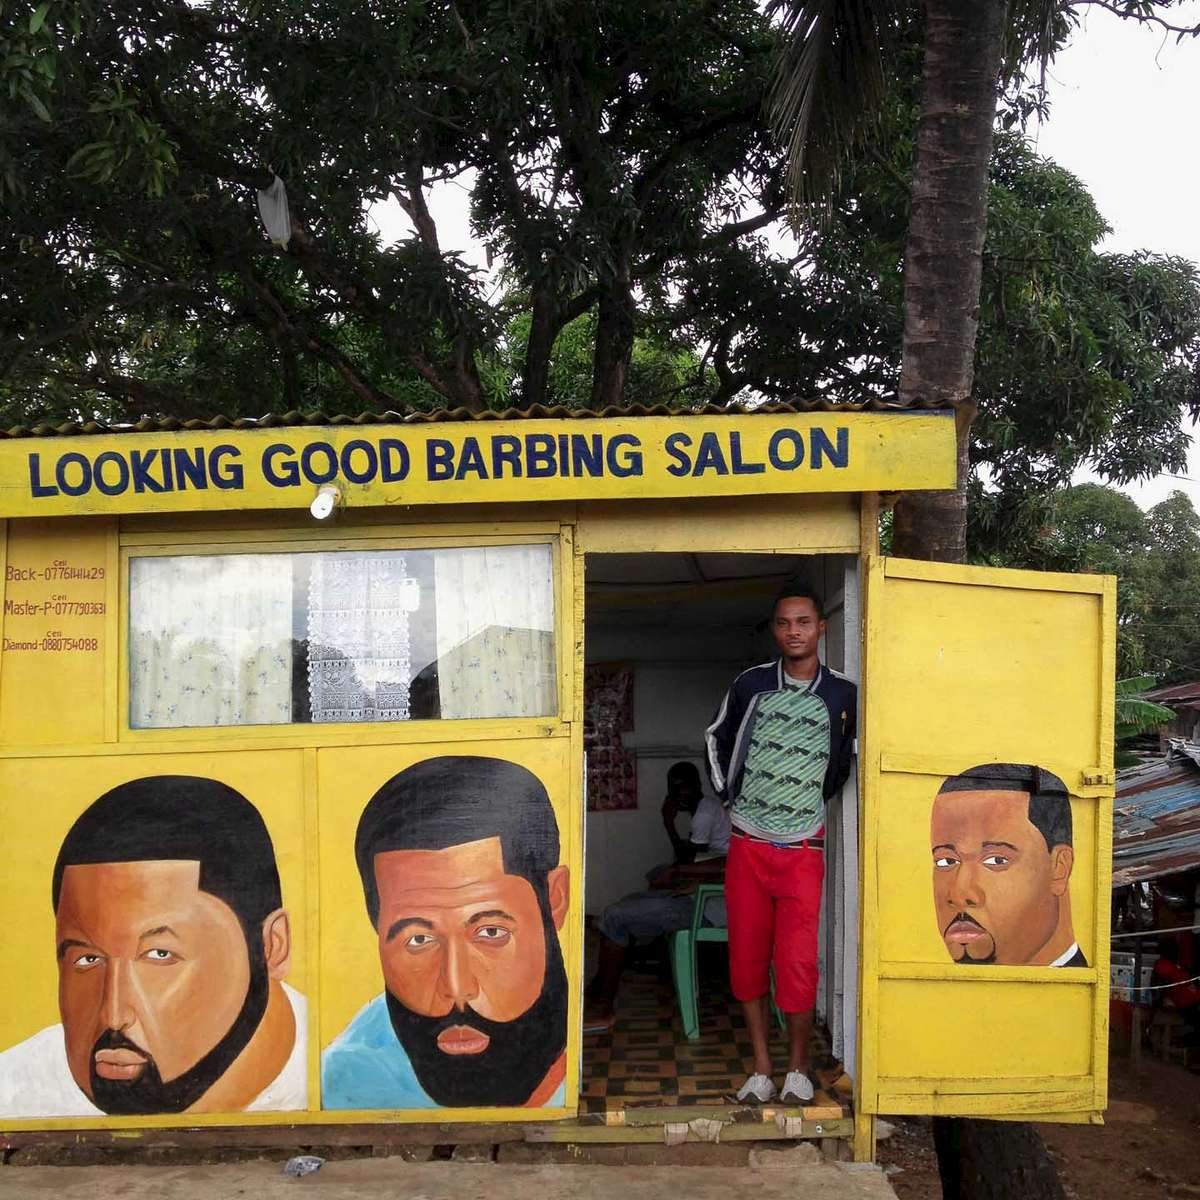 Looking Good Barbing Salon in Monrovia, Liberia. May 2013.